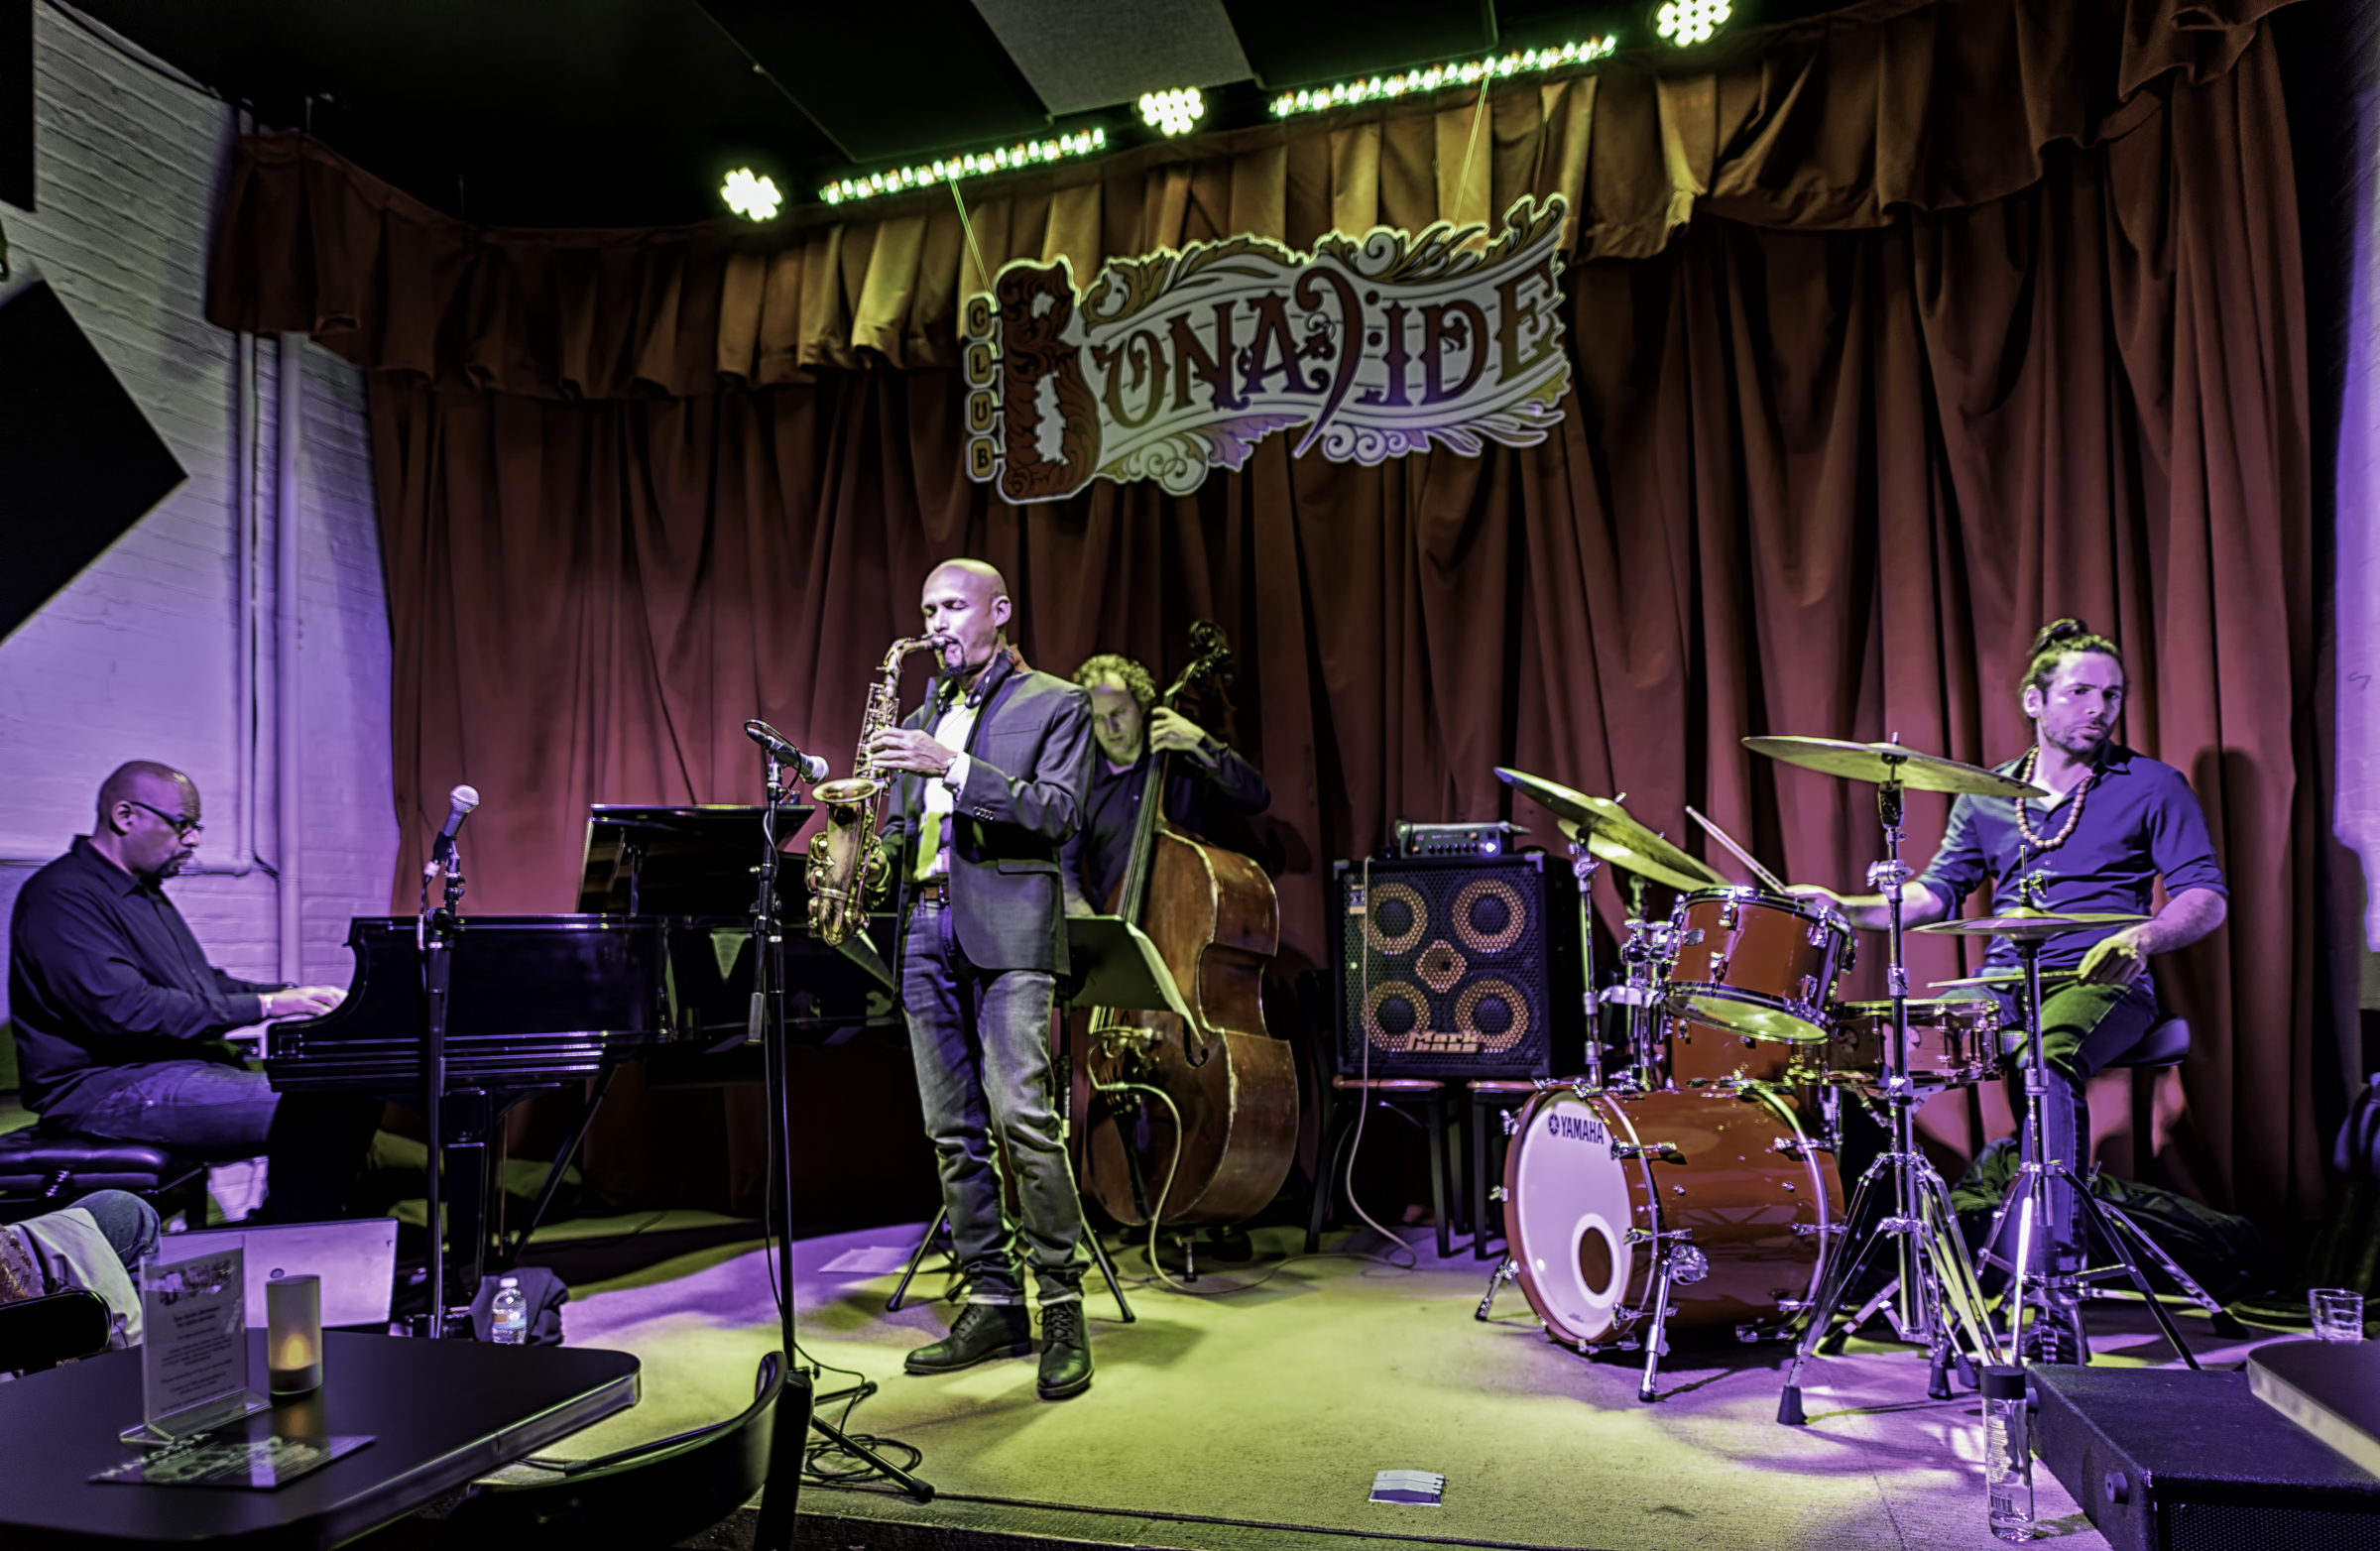 Luis Perdomo, Miguel Zenon, Hans Glawischnig and Henry Cole with the Miguel Zenon Quartet at Club Bonafide in NYC